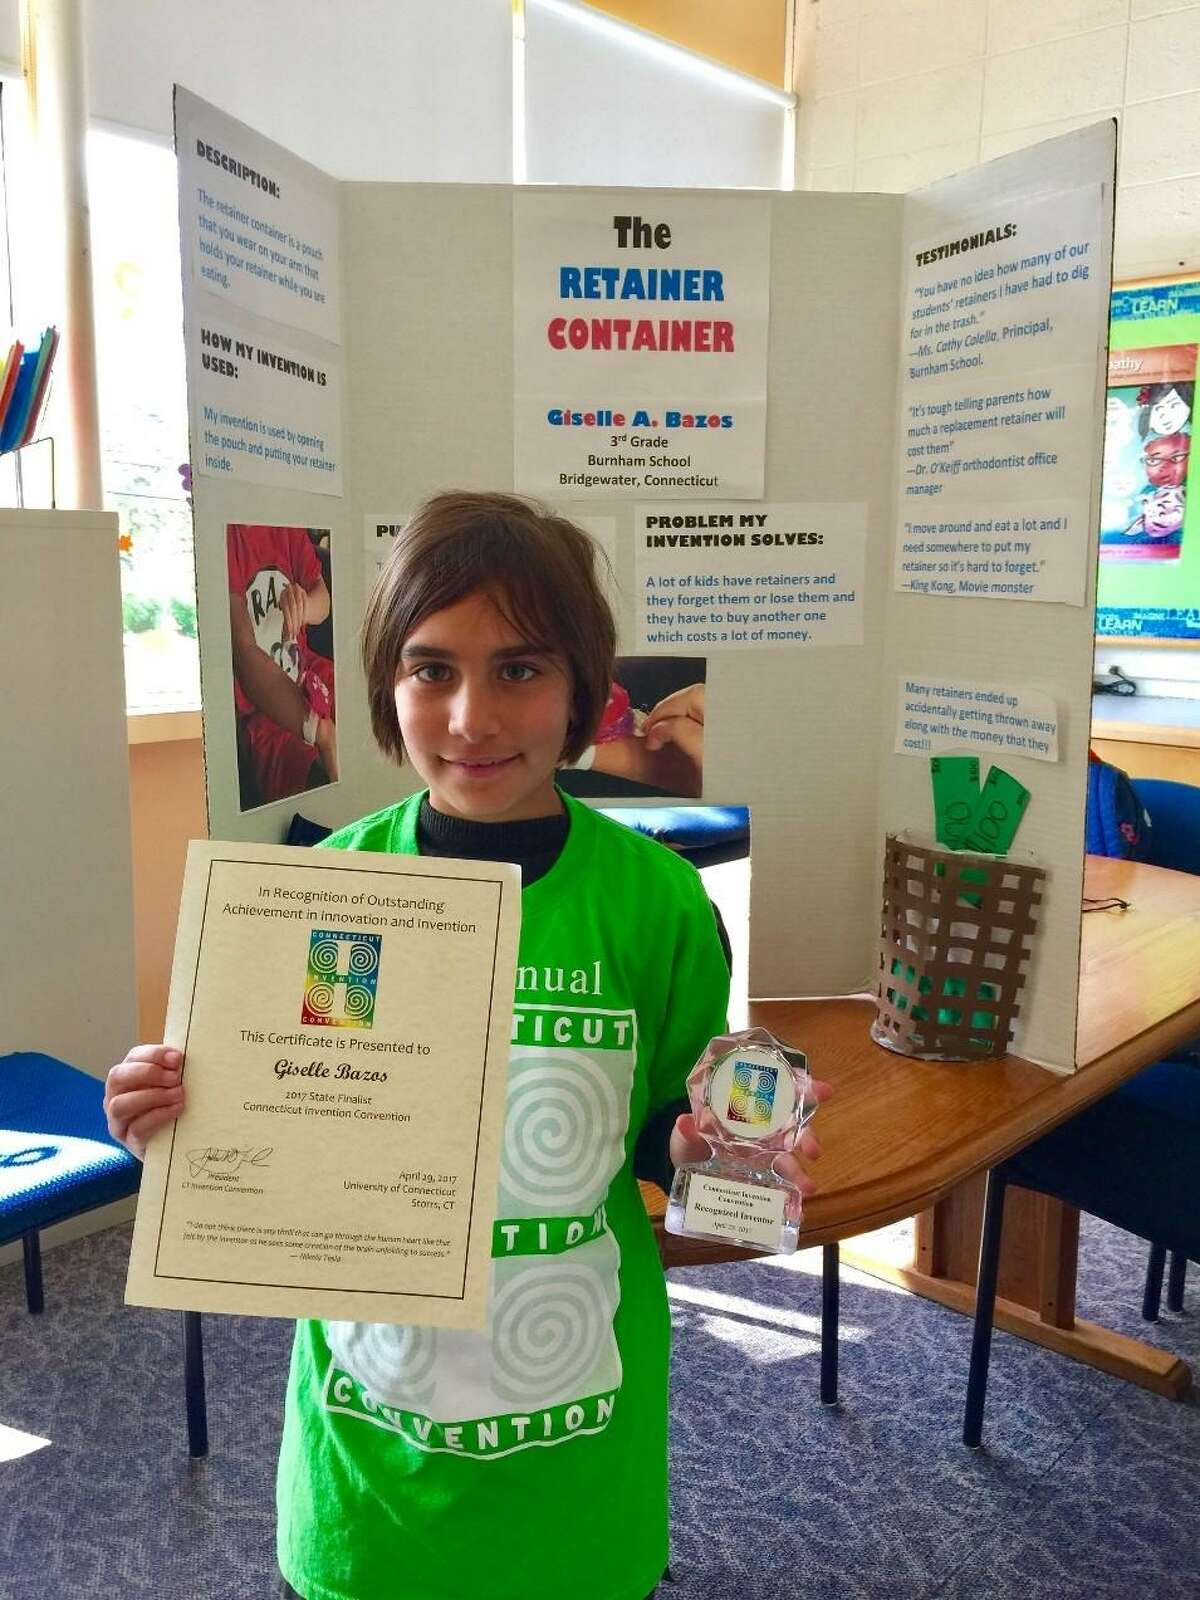 Inventor of the Retainer Container, Burnham School third-grader Giselle Bazos will visit Washington D.C. in early June to present at the National Invention Convention and Entrepreneurship Expo.